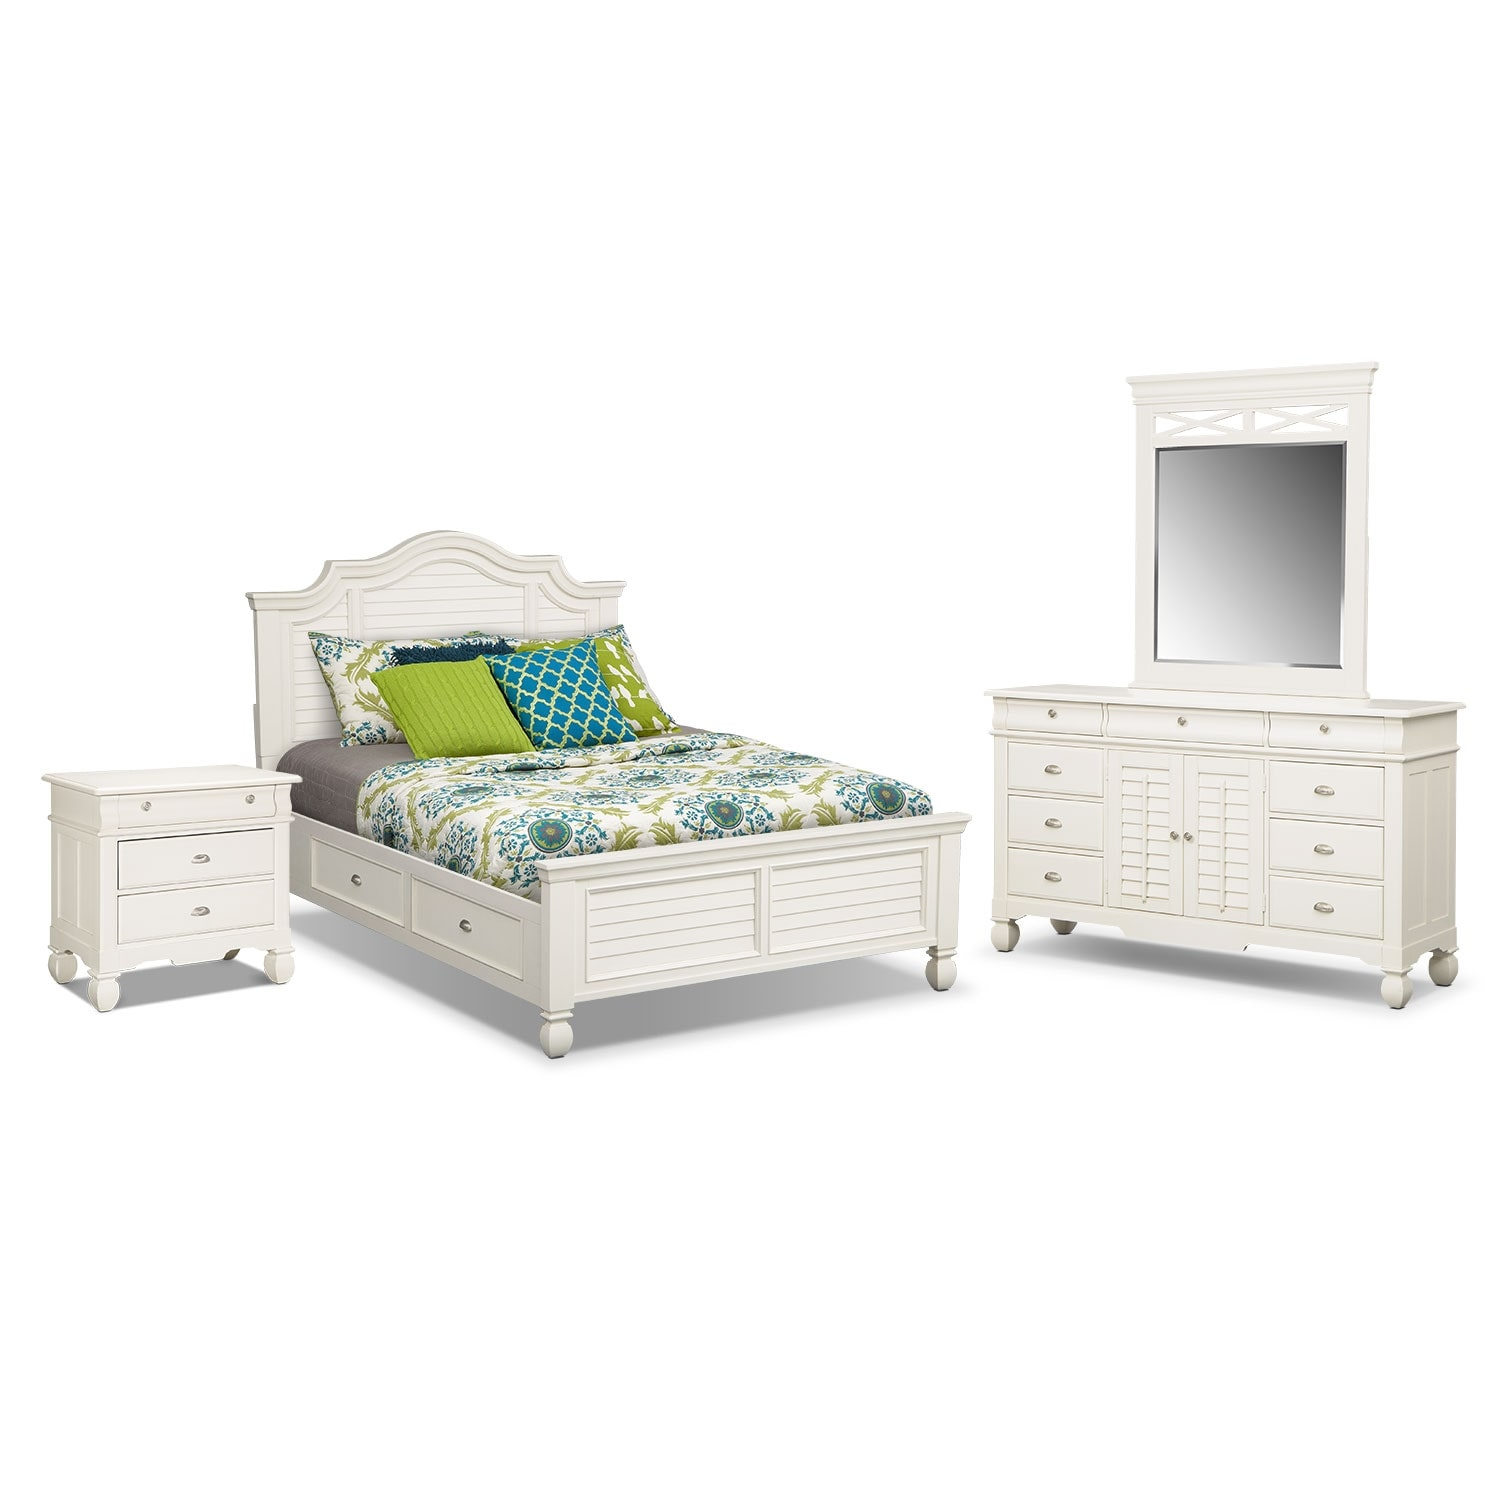 Plantation Cove 6-Piece Queen Storage Bedroom Set - White